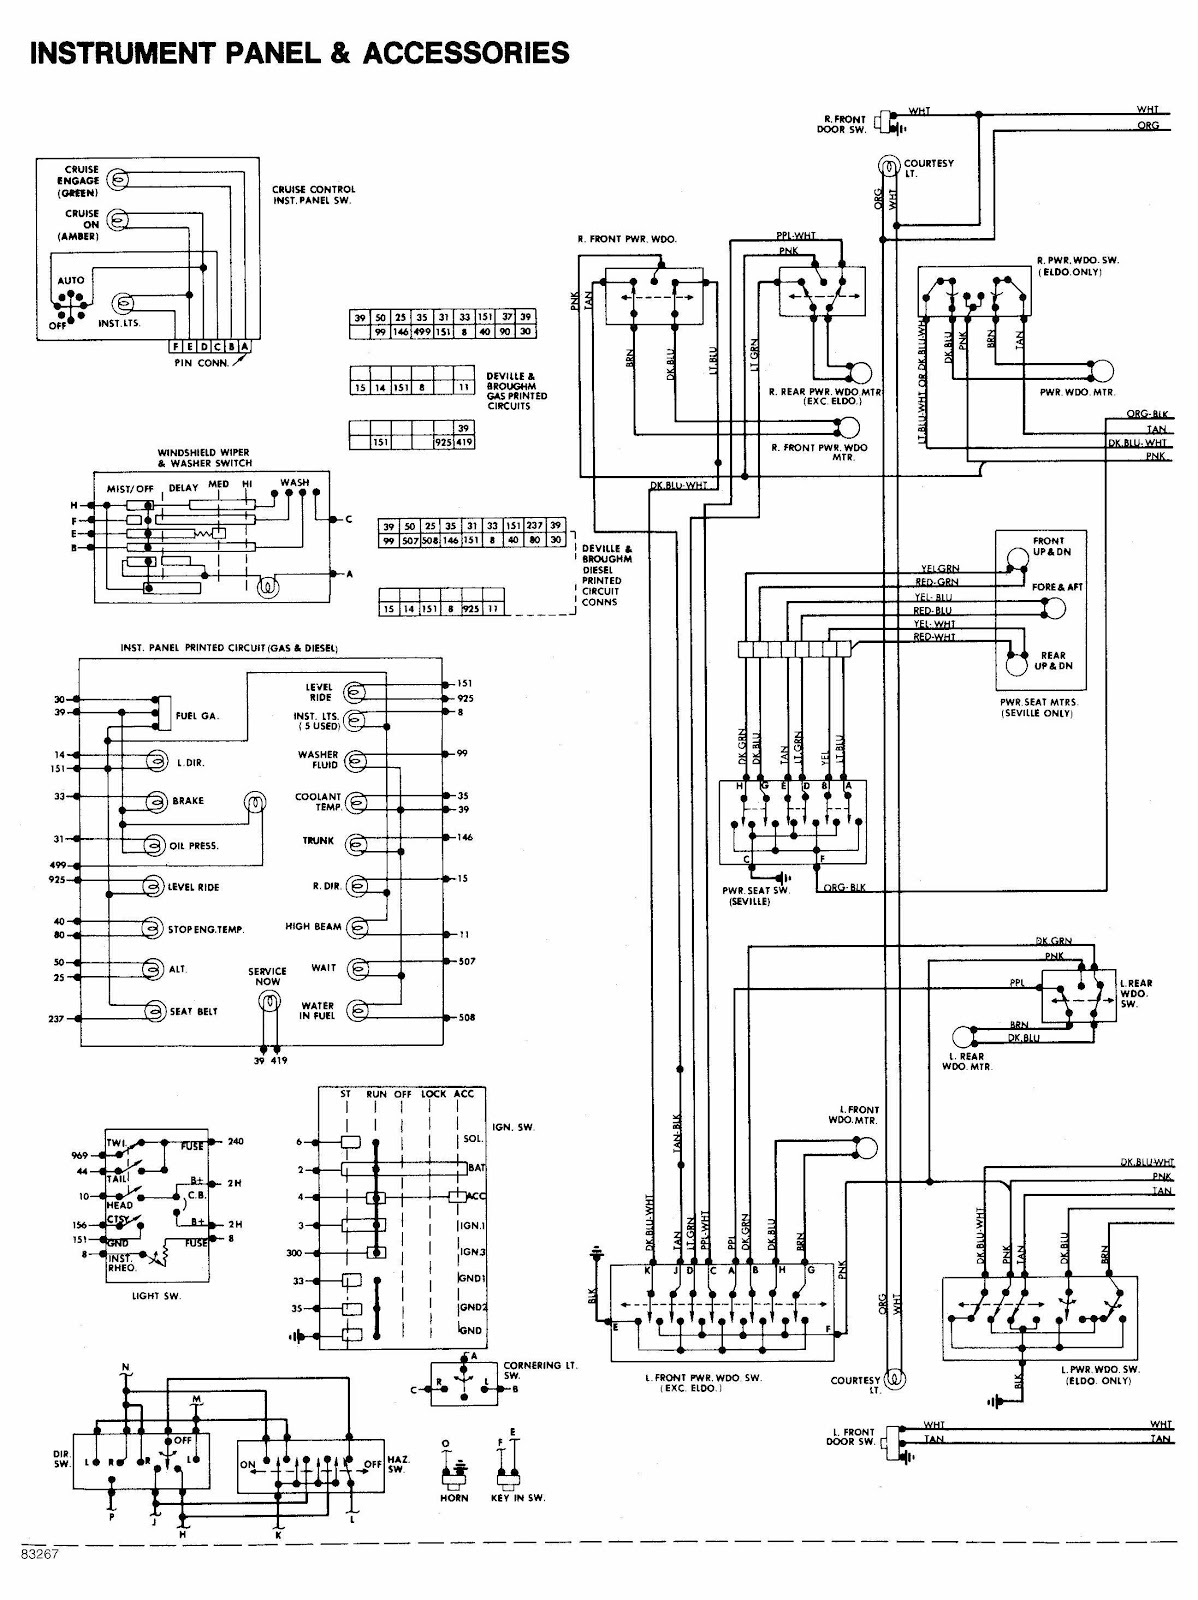 2006 bmw fuse box diagram likewise 1997 cadillac deville fuse box